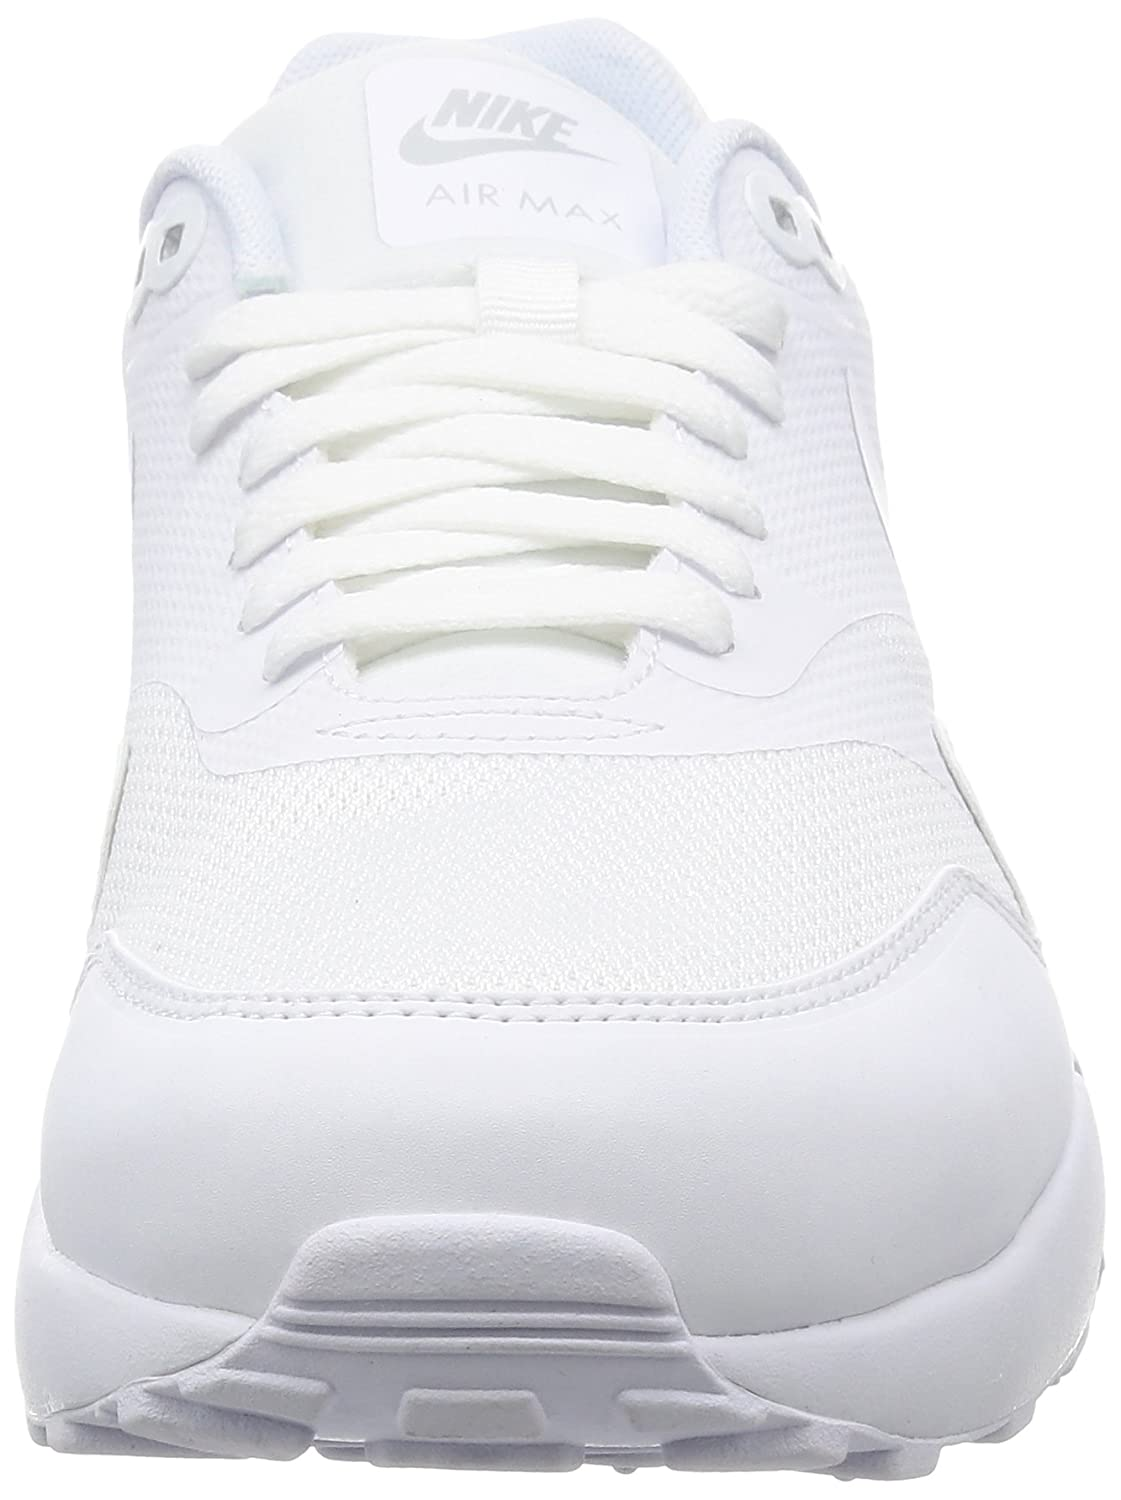 sports shoes 08d69 330d0 Nike Men s Air Max 1 Ultra 2.0 Essential Training Shoes, Bianco (White White  Pure Platinum), 9.5 UK  Amazon.co.uk  Shoes   Bags